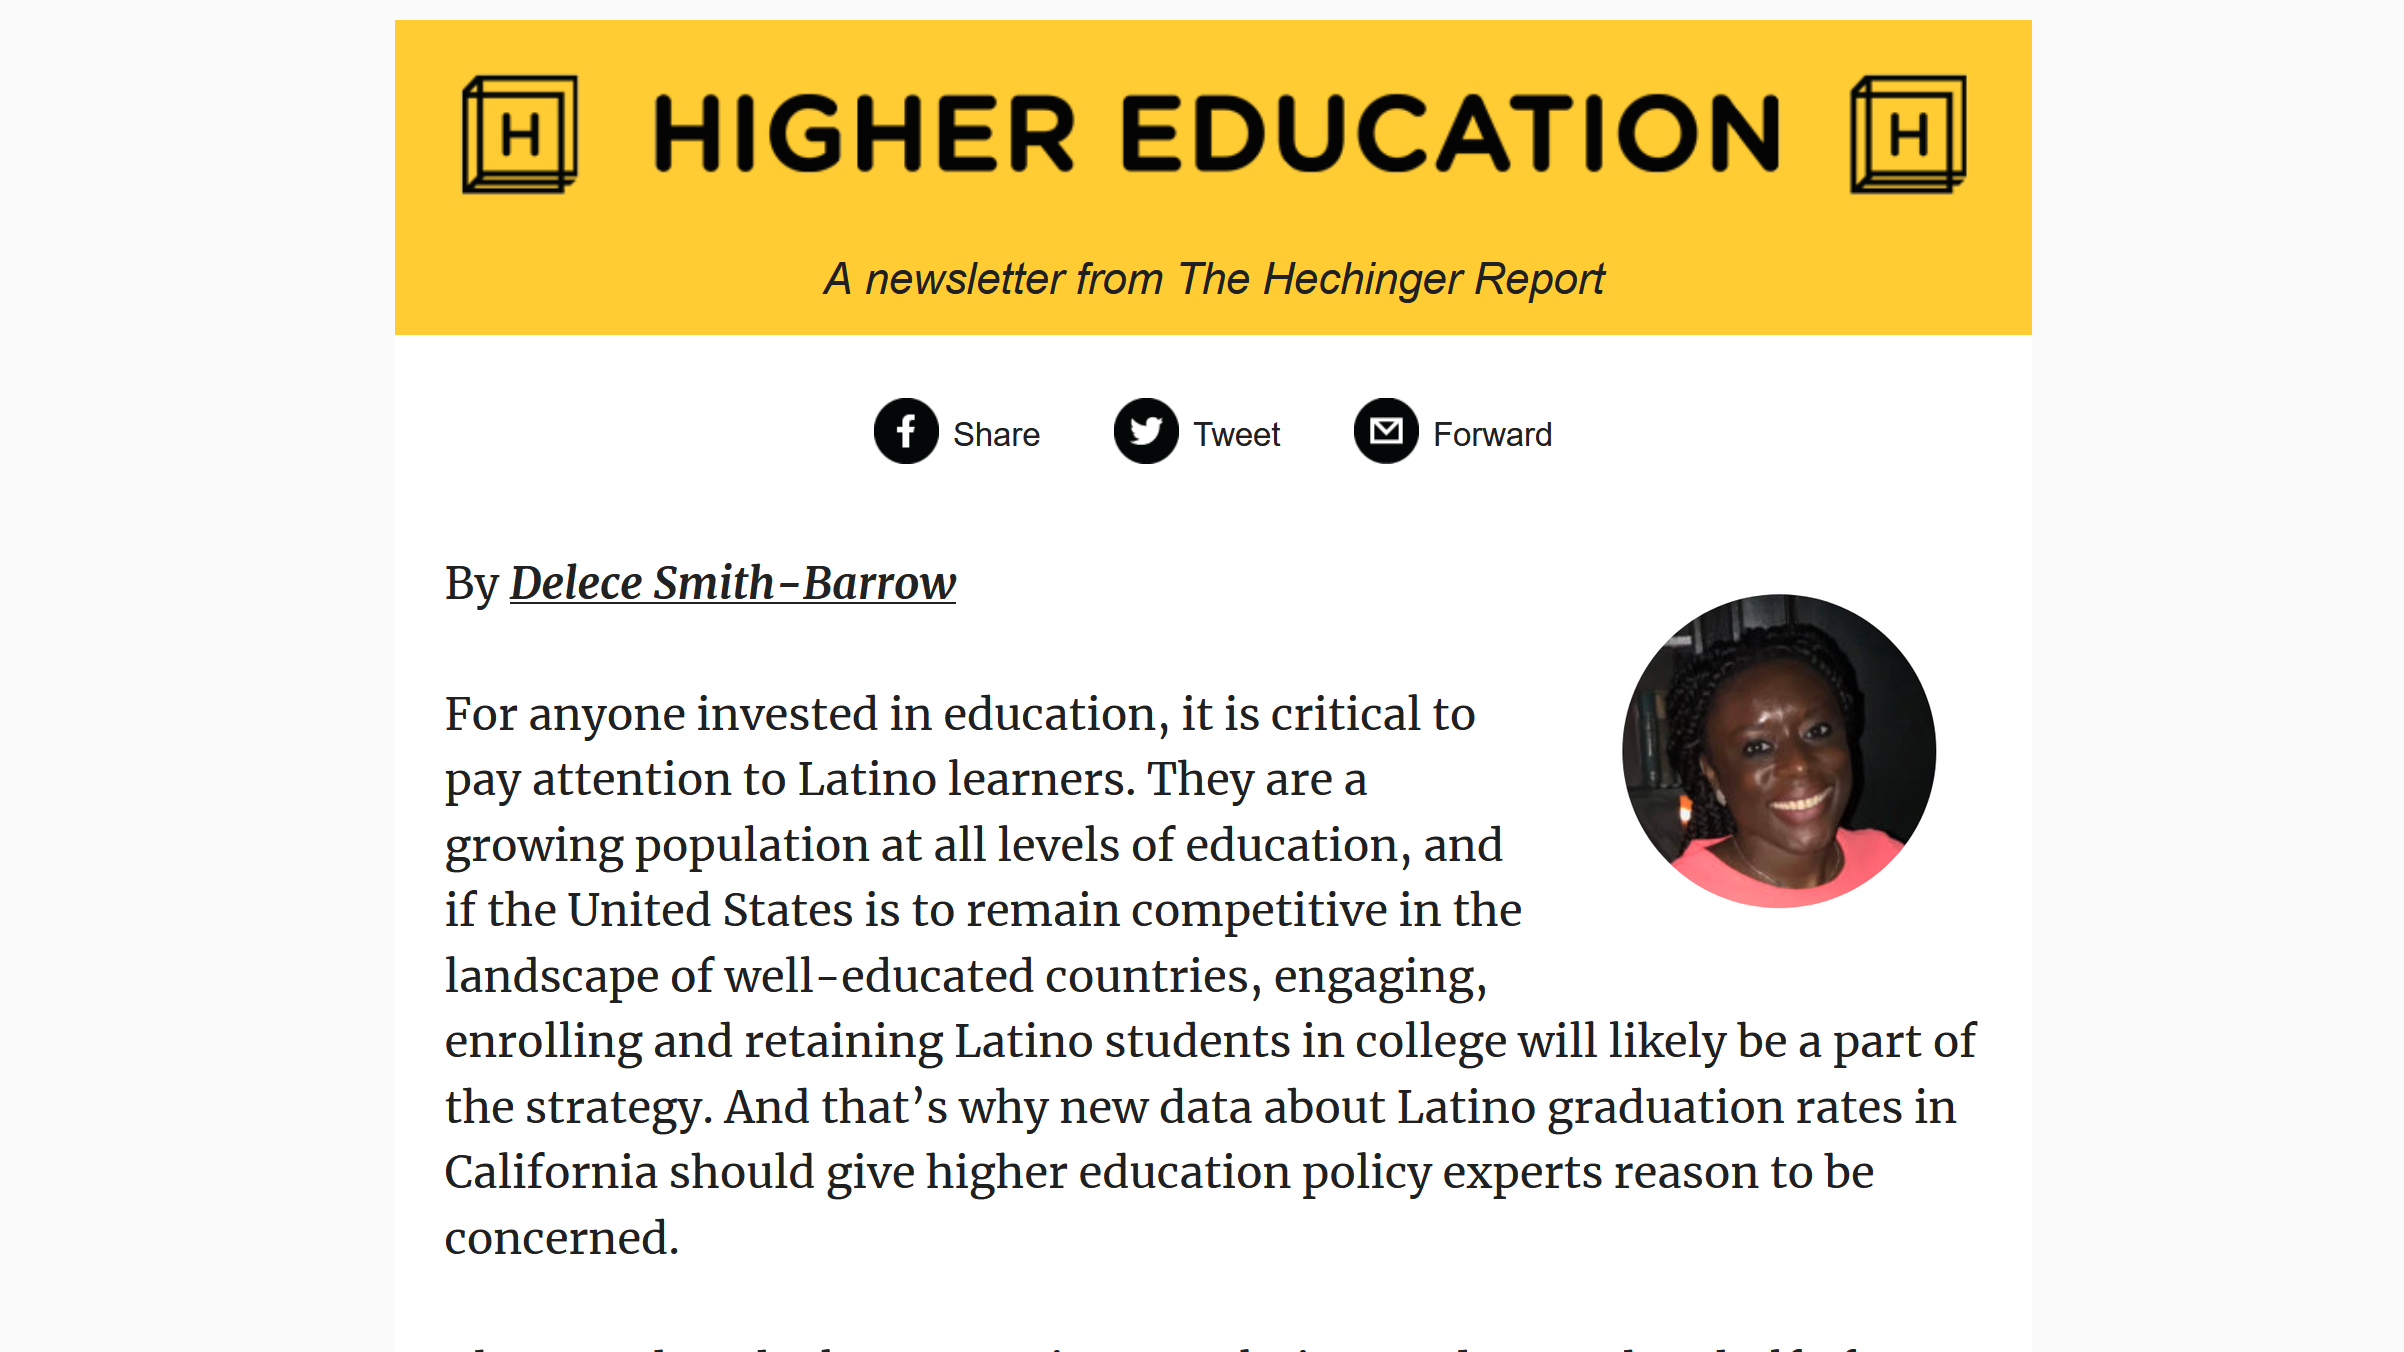 Hechinger Report Newsletter: California has the most Latinos, but most don't have a degree